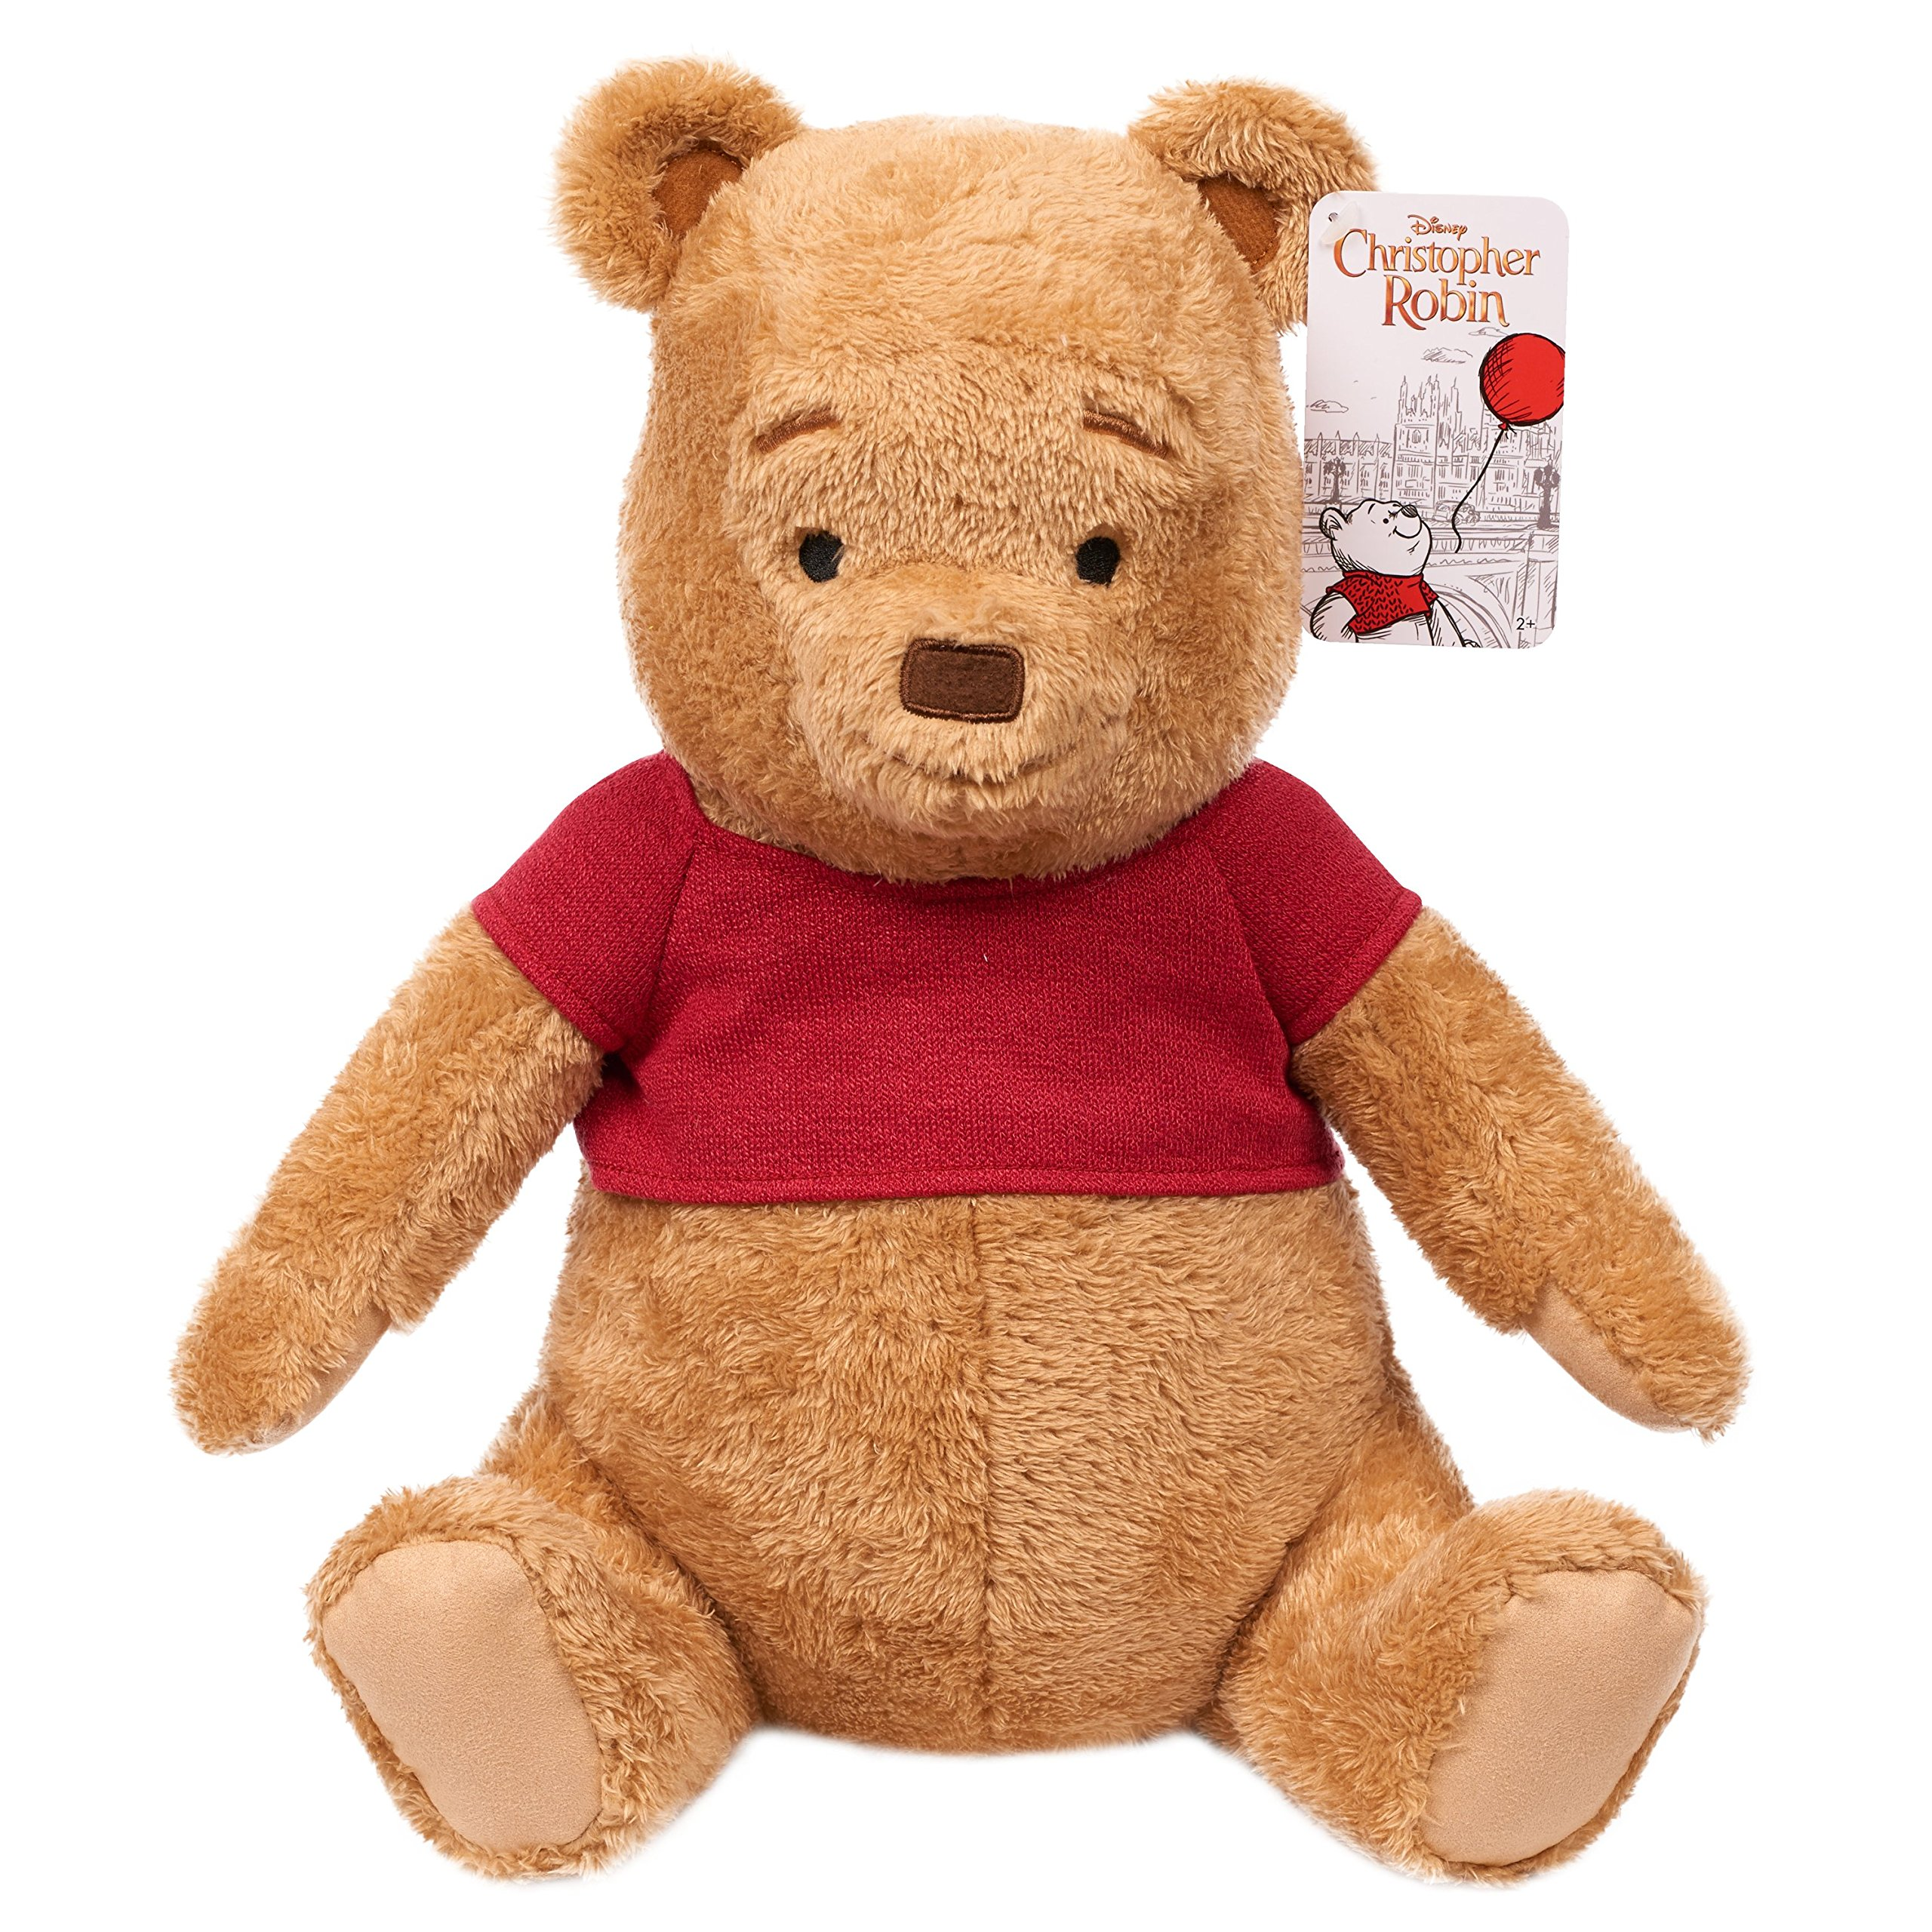 Christopher Robins Live Action 14'' Large Pooh Plush, Yellow